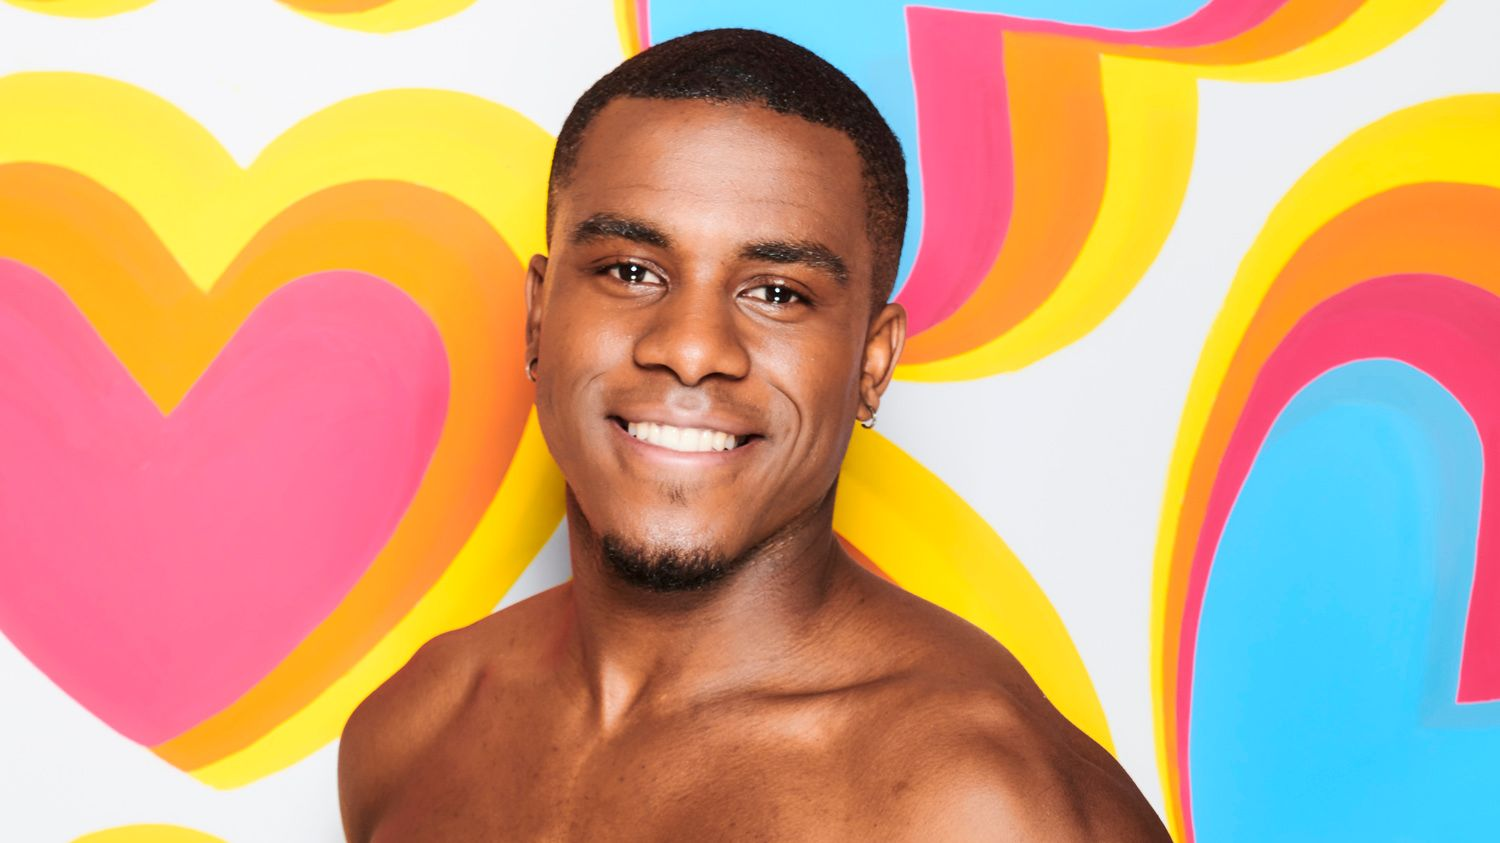 Love Island fans resurface adorable video of Luke T supporting his mum on The X Factor